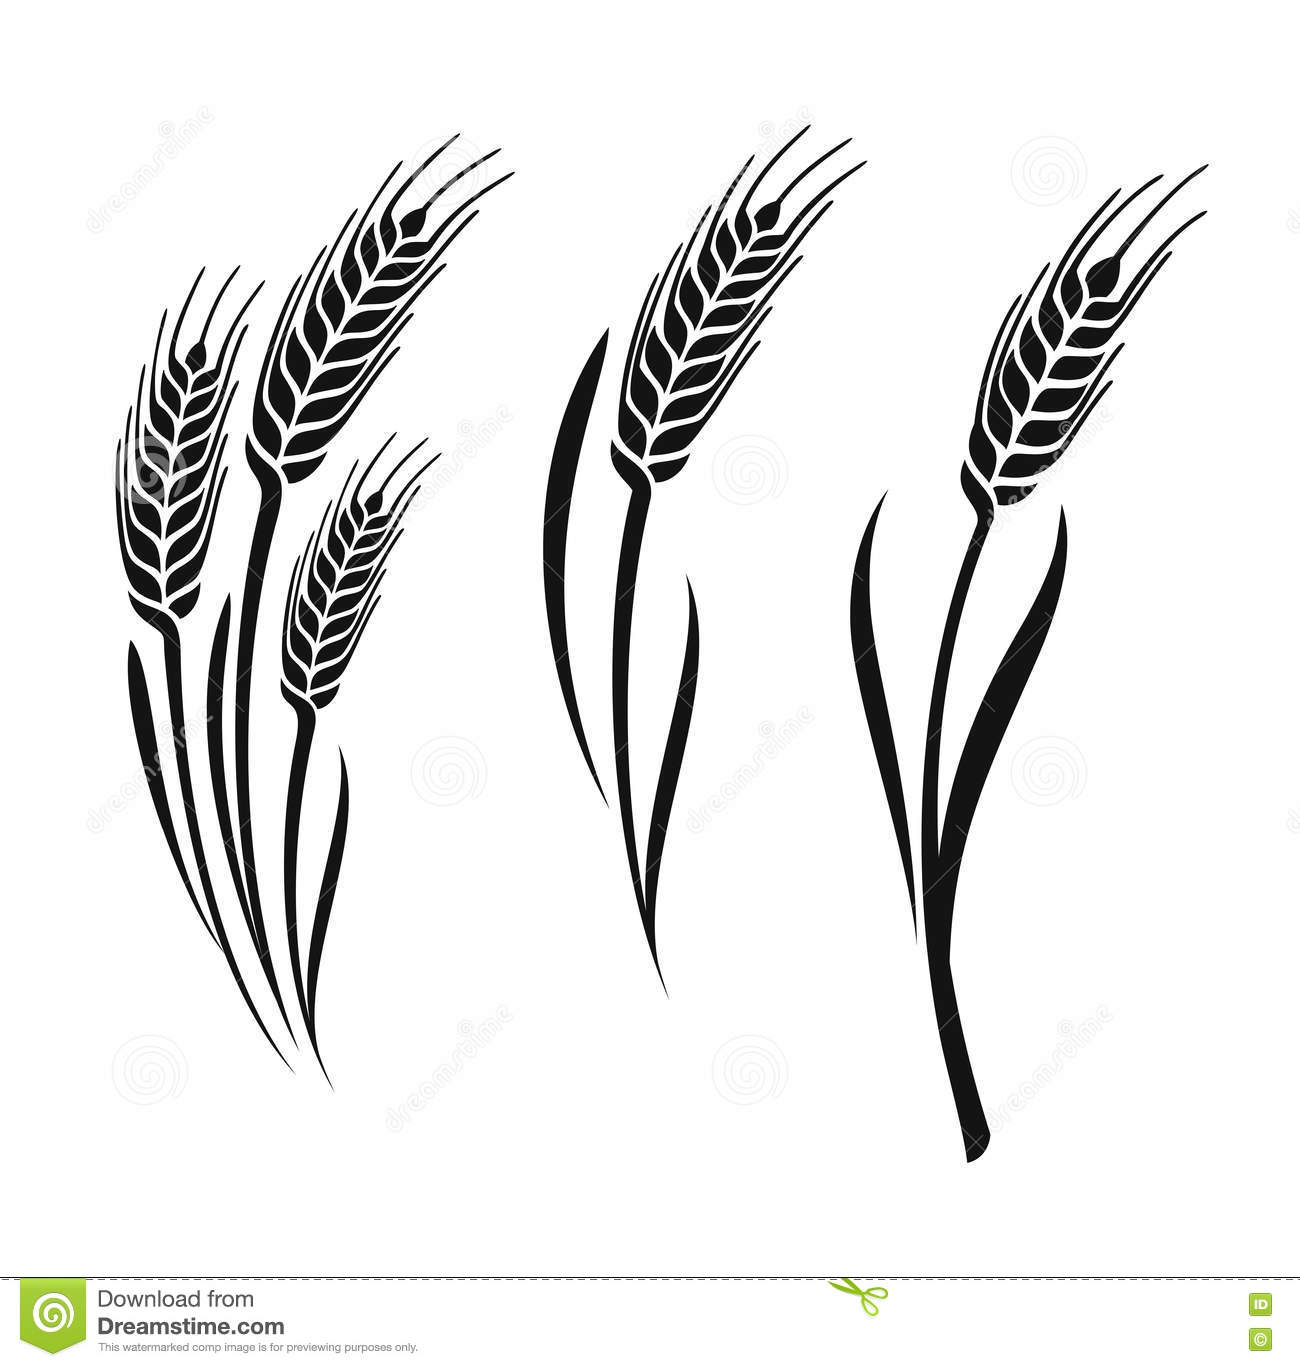 Wheat vector ears stock vector. Illustration of natural ...